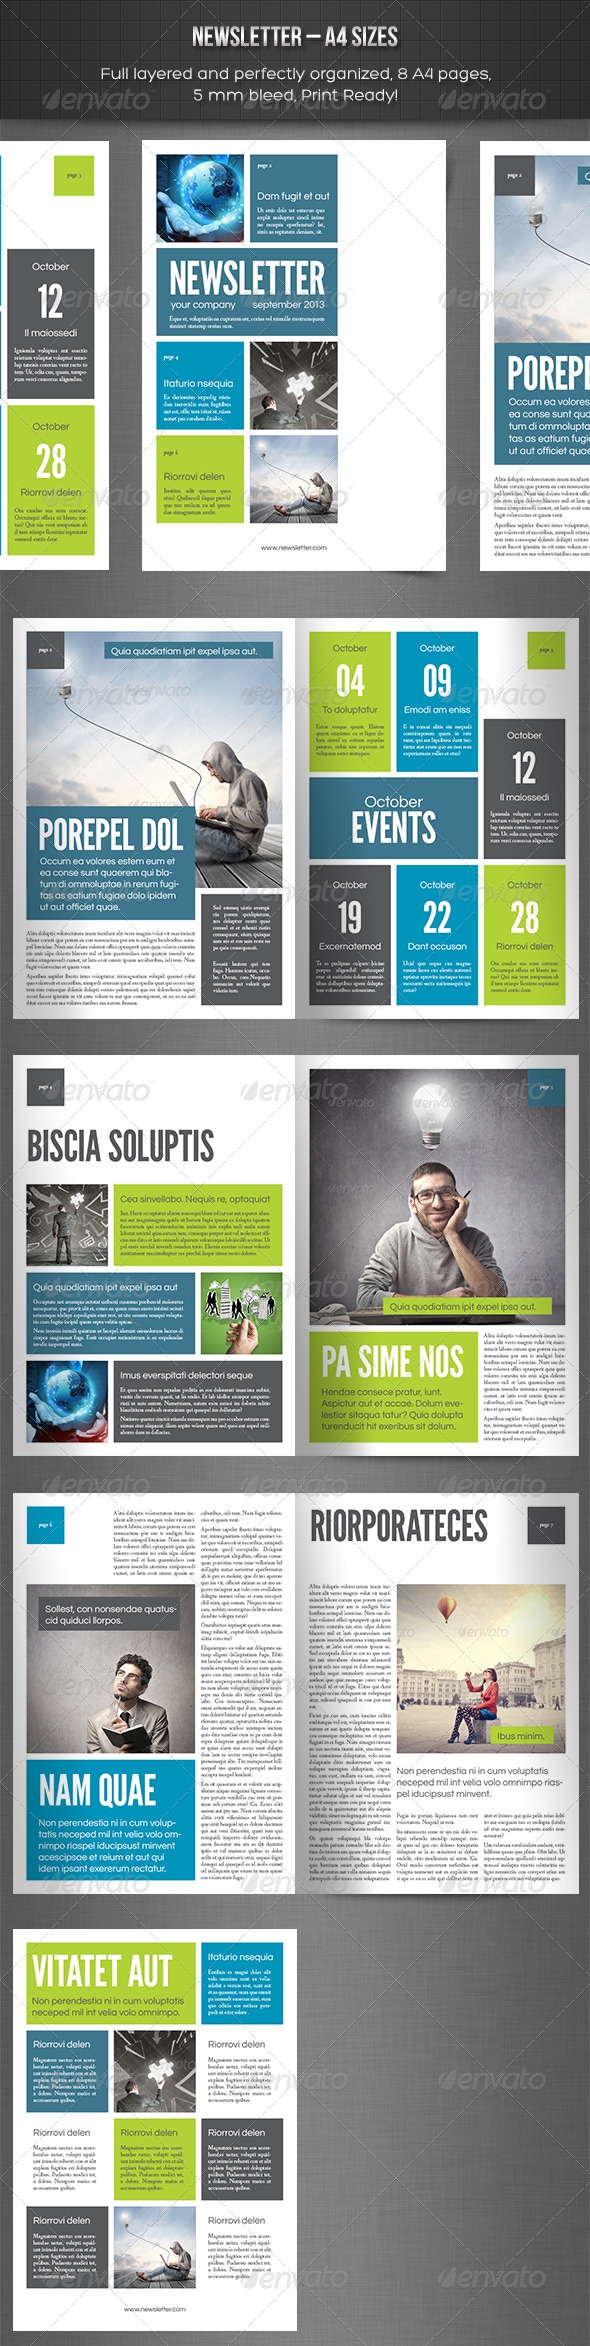 preview  Page Newsletter Template Indesign on indesign layout templates, create your own newsletter templates, yearbook page layout templates, print newsletter templates,